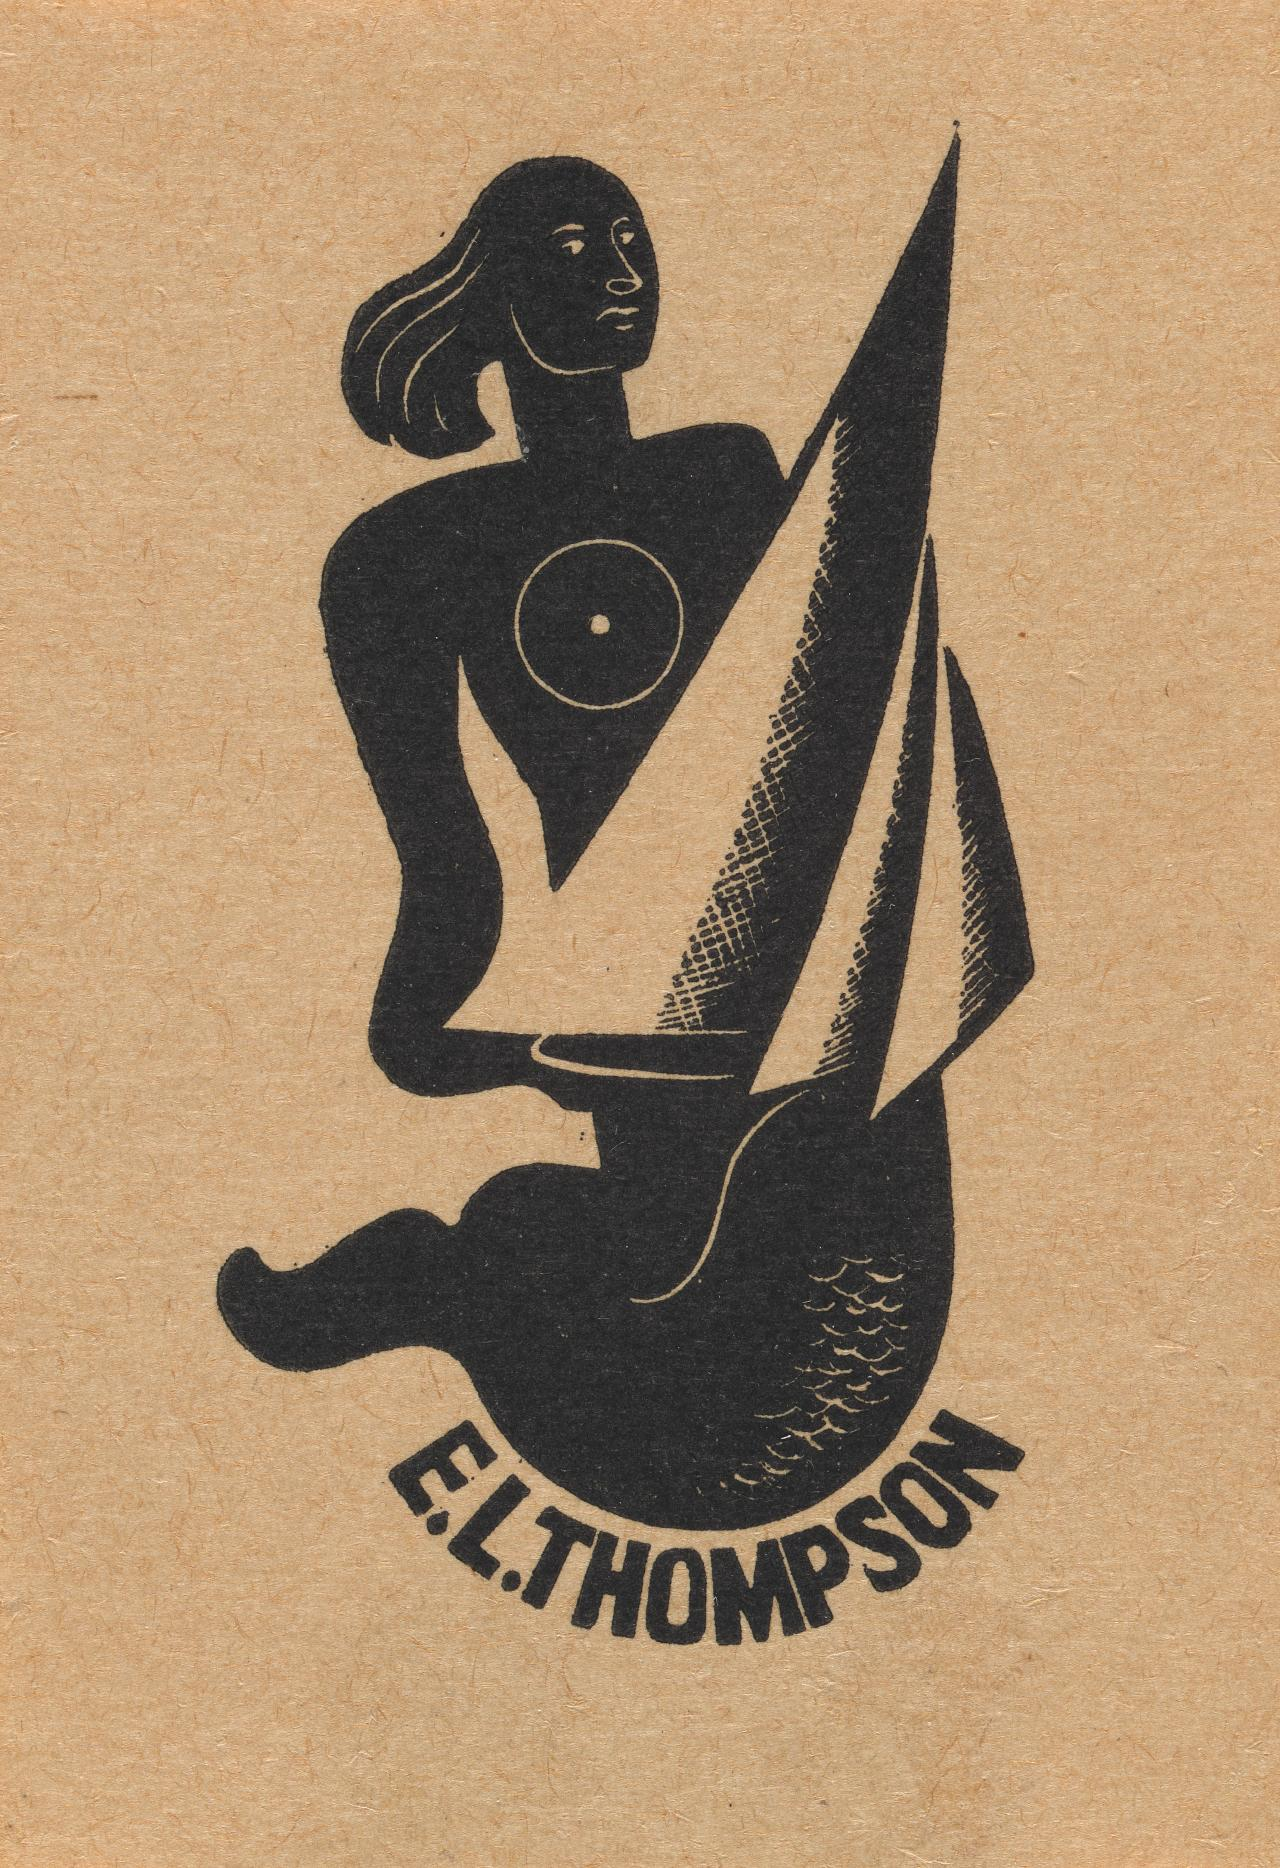 Bookplate: E. L. Thompson (Mermaid holding sail boat)